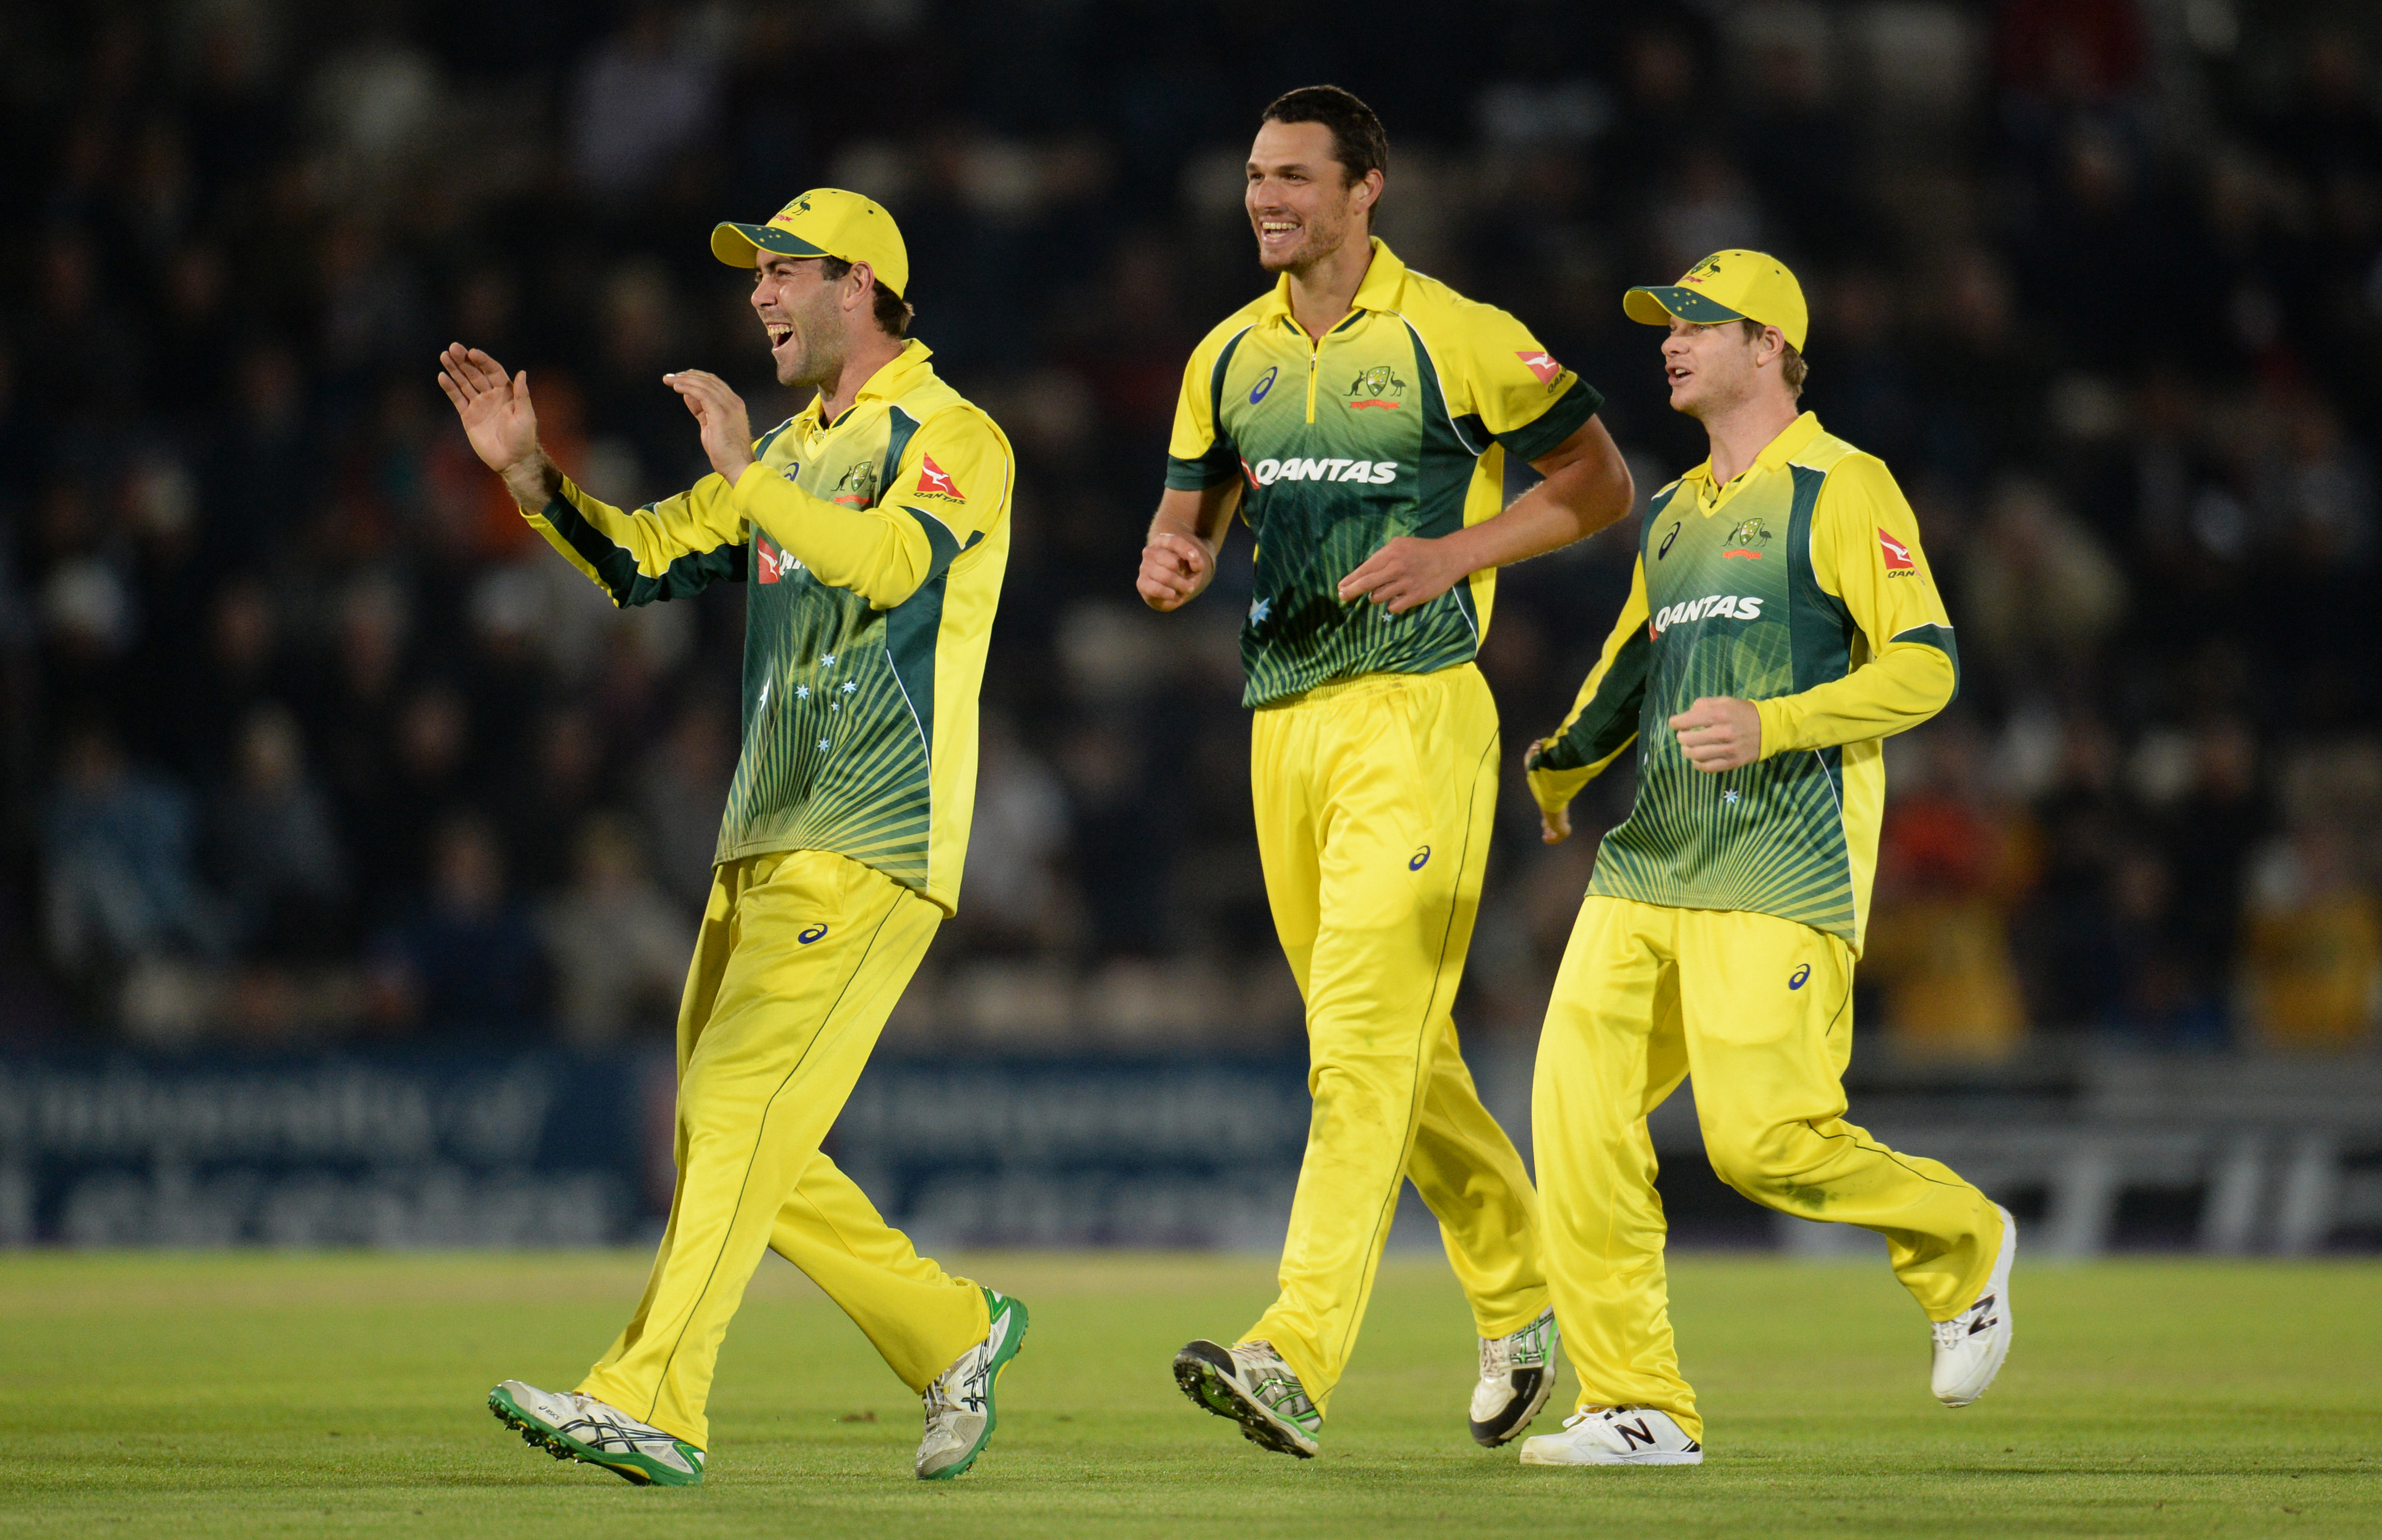 Cricket - England v Australia - First Royal London One Day International - Ageas Bowl - 3/9/15nAustralia's Glenn Maxwell, Nathan Coulter Nile and Steve Smith celebrate England's Chris Woakes dismissal nAction Images via Reuters / Philip BrownnLivepic